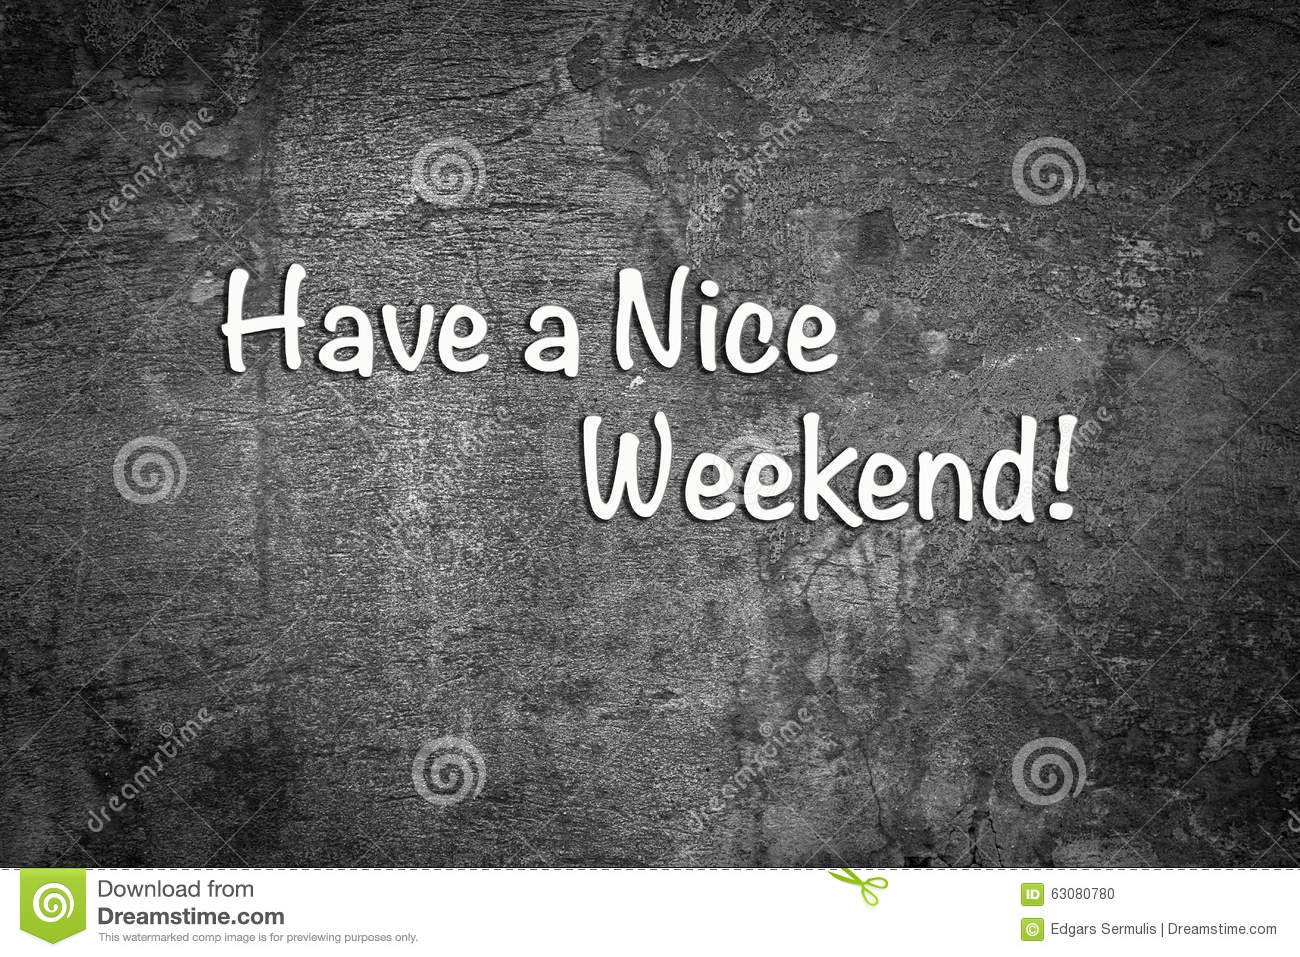 Have a Nice Weekend. Black and white background